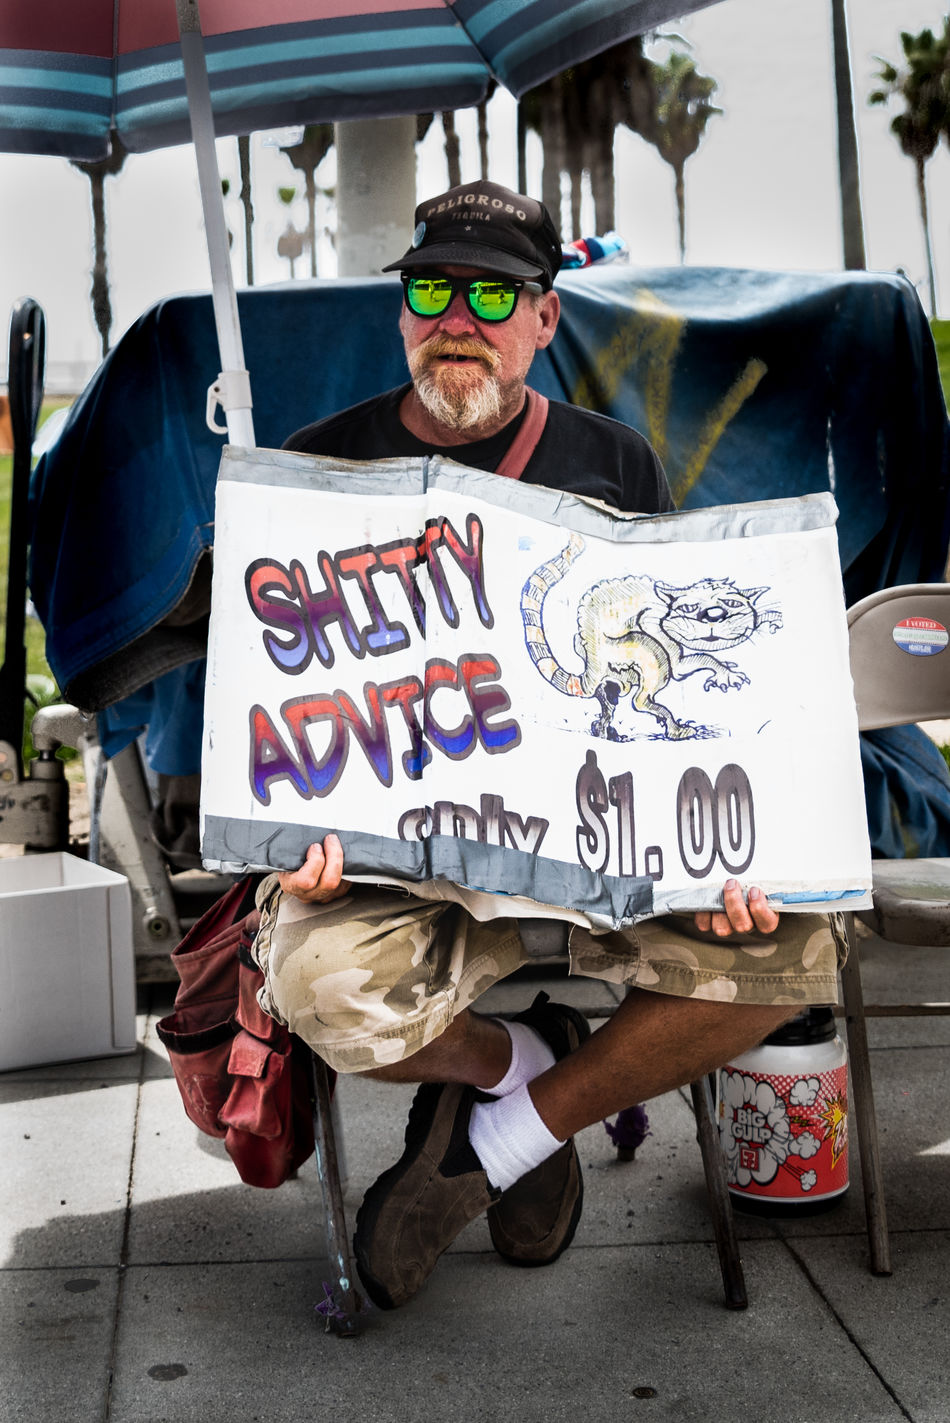 Getting some shitty advice, Venice Beach, Los Angeles Advice Beach Beach Life Beach Umbrella Busker Character Day Earning A Living Funny La Los Angeles, California Los Ángeles Person Shitty Day Sign Street Photography Sunglasses Travel Photography USA Venice Beach